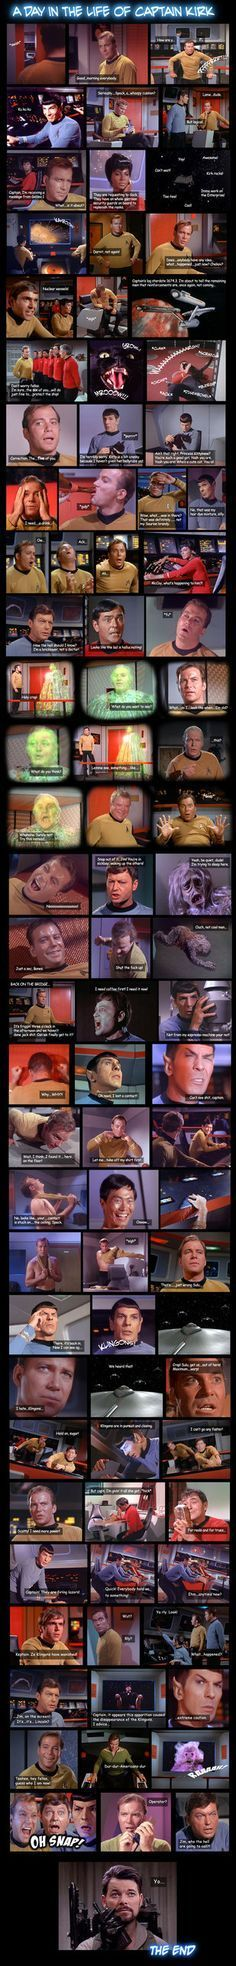 "The newest in my Star Trek photo comic series. This time it's up to Kirk & Co! The people who did read my other comics know which ""mystery"" character will make another guest appearance. My God,..."